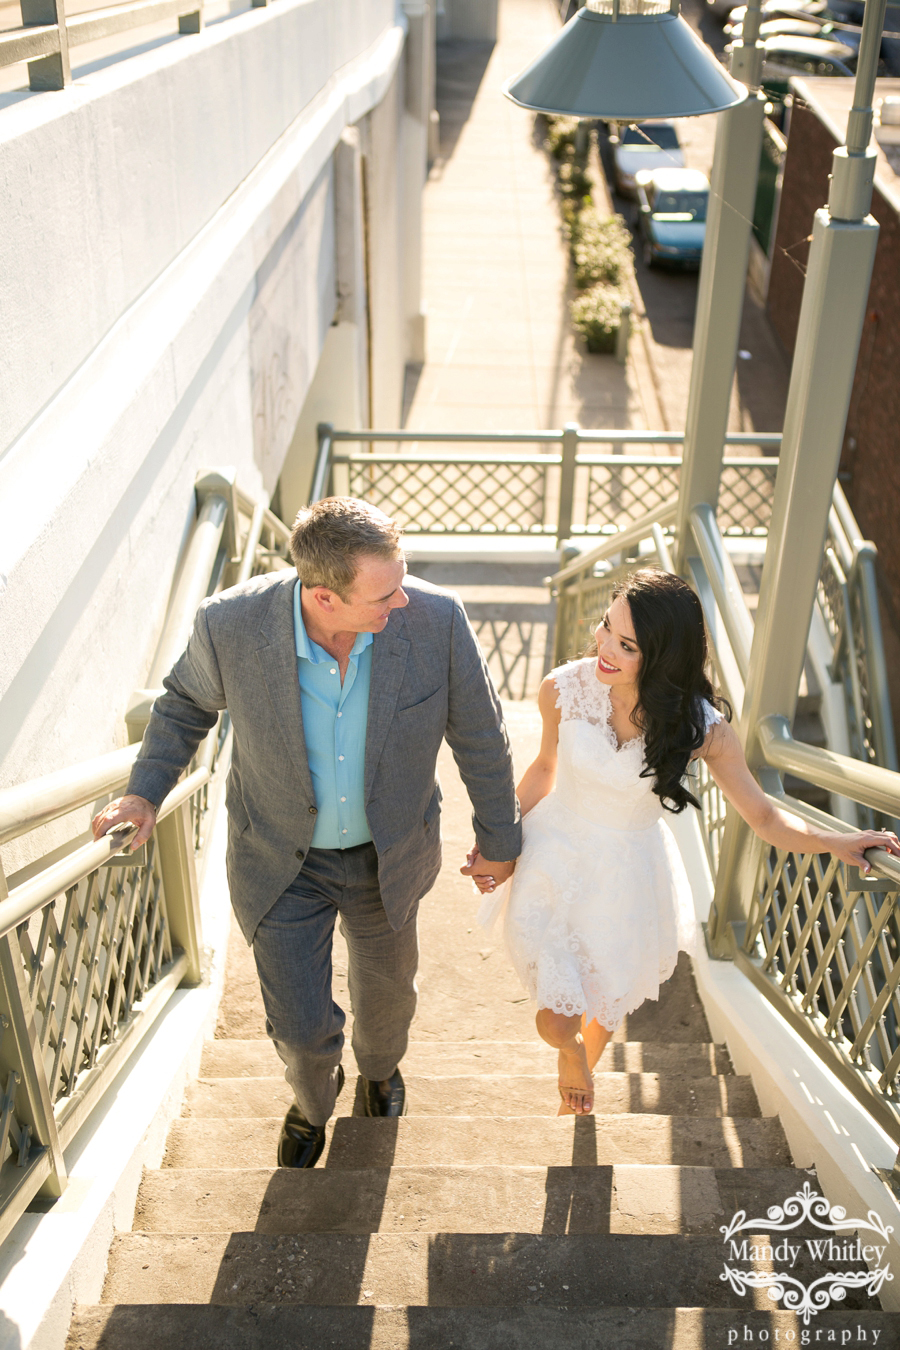 Downtown Nashville Engagement Session by Mandy Whitley Photography